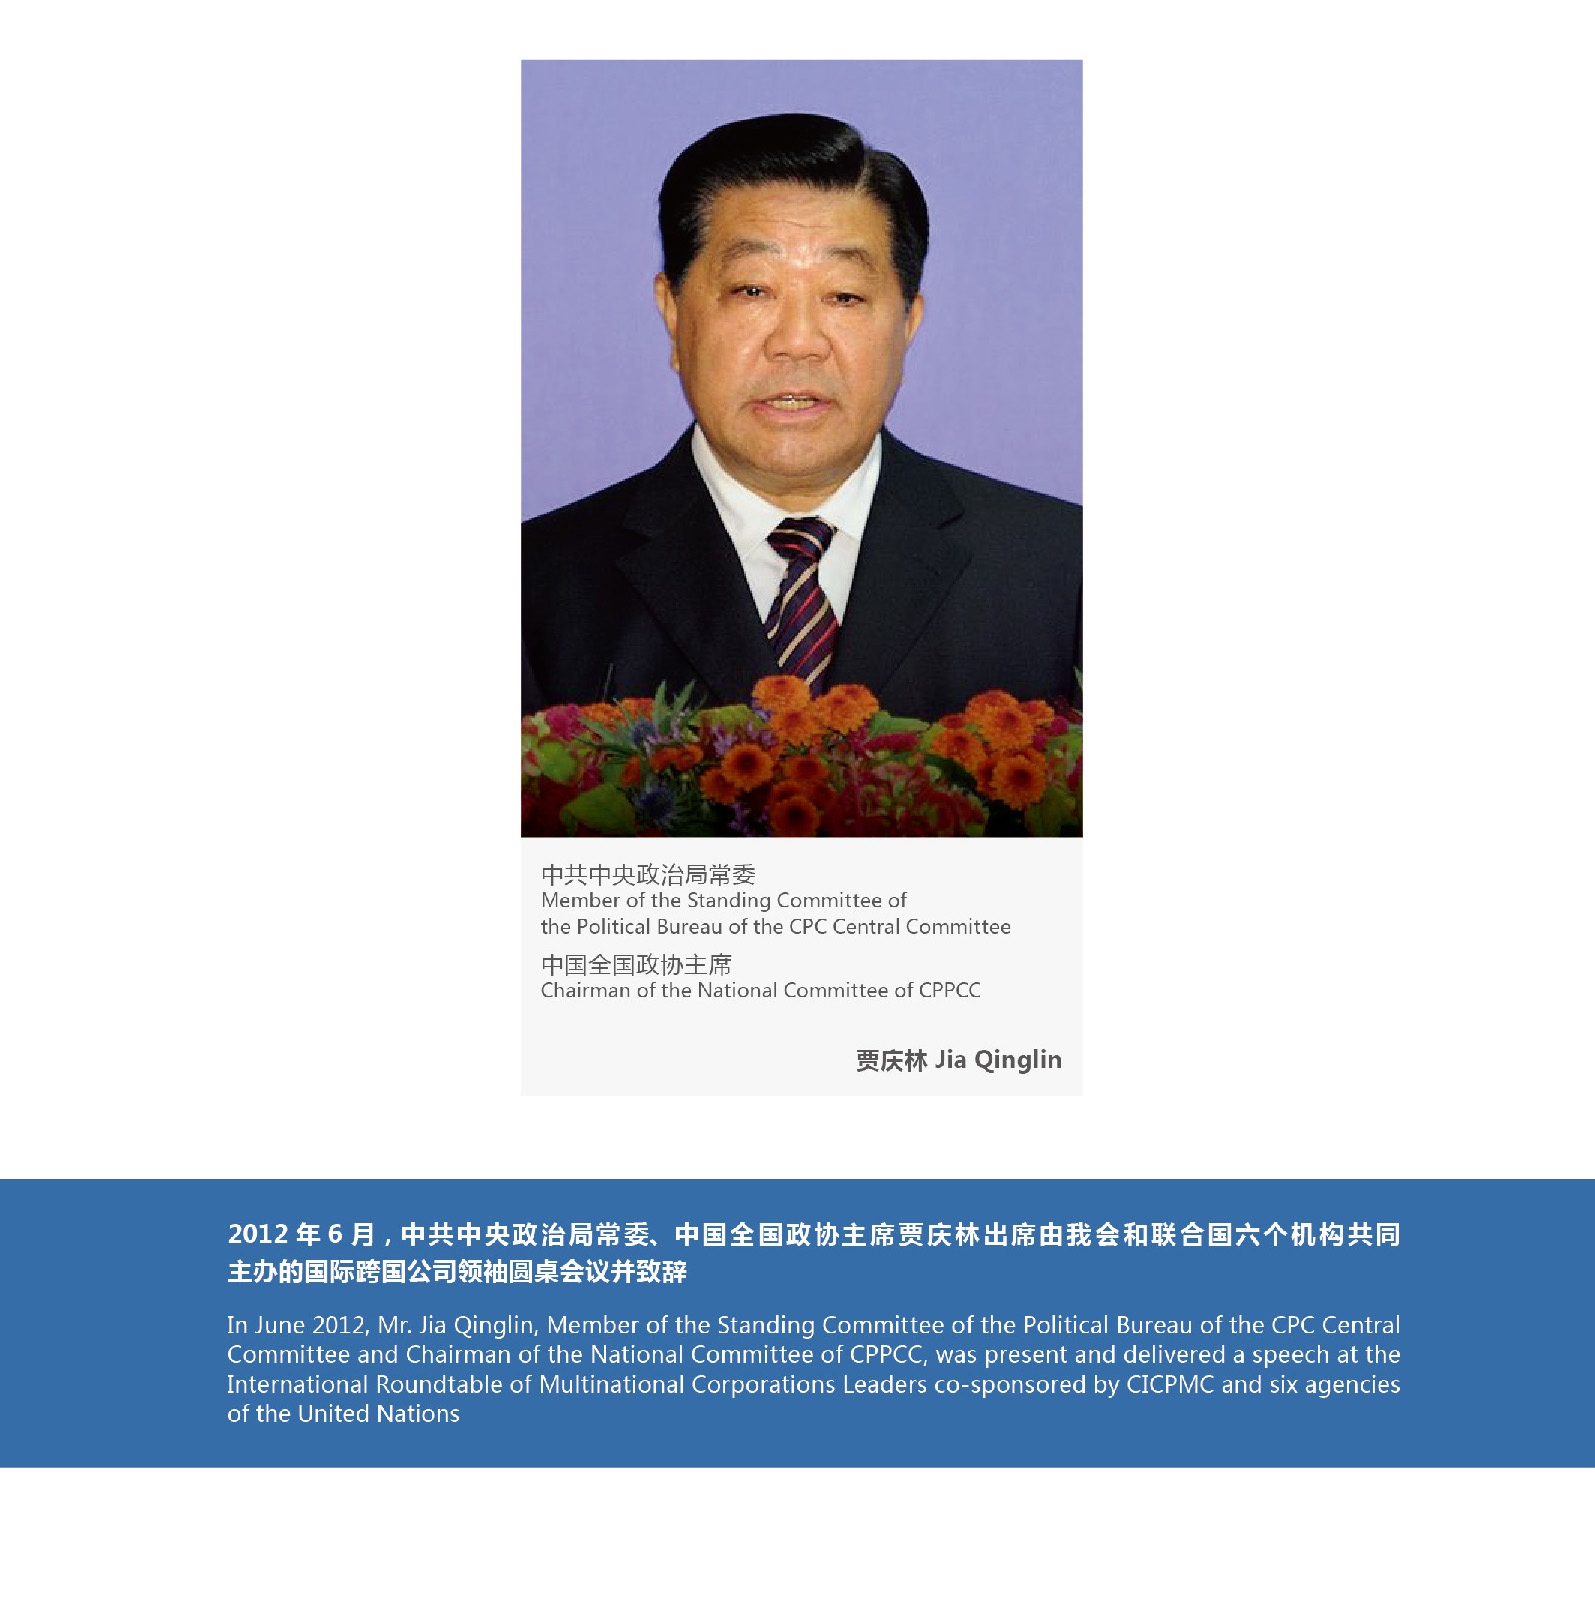 In June 2012, Mr. Jia Qinglin, Member of the Standing Committee of the Political Bureau of the CPC Central Committee and Chairman of the National Committee of CPPCC, was present and delivered a speech at the International Roundtable of Multinational Corporations Leaders co-sponsored by CICPMC and si